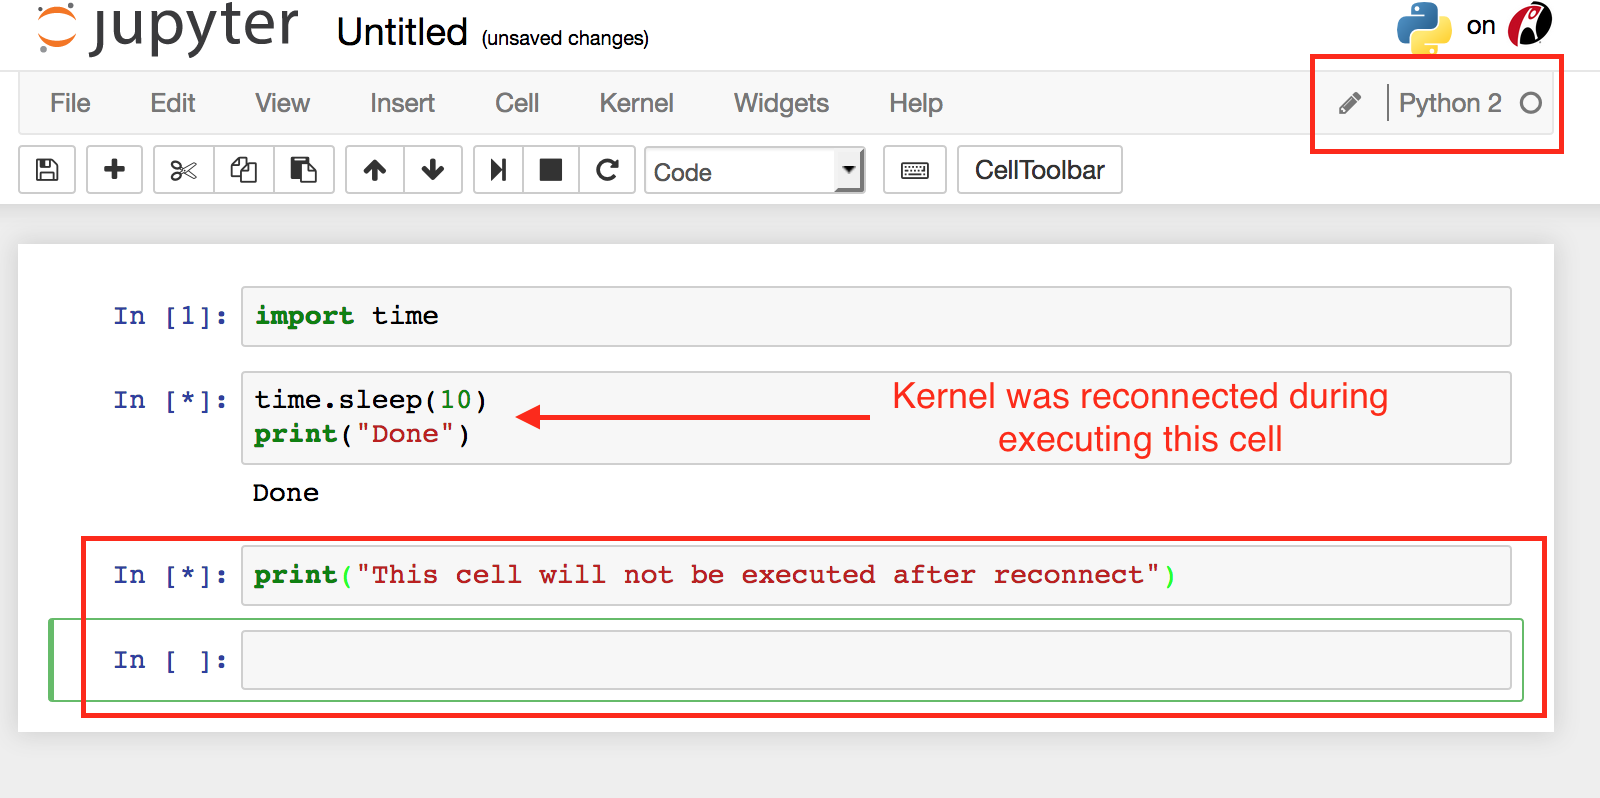 Kernel stops responding if the kernel is reconnected during